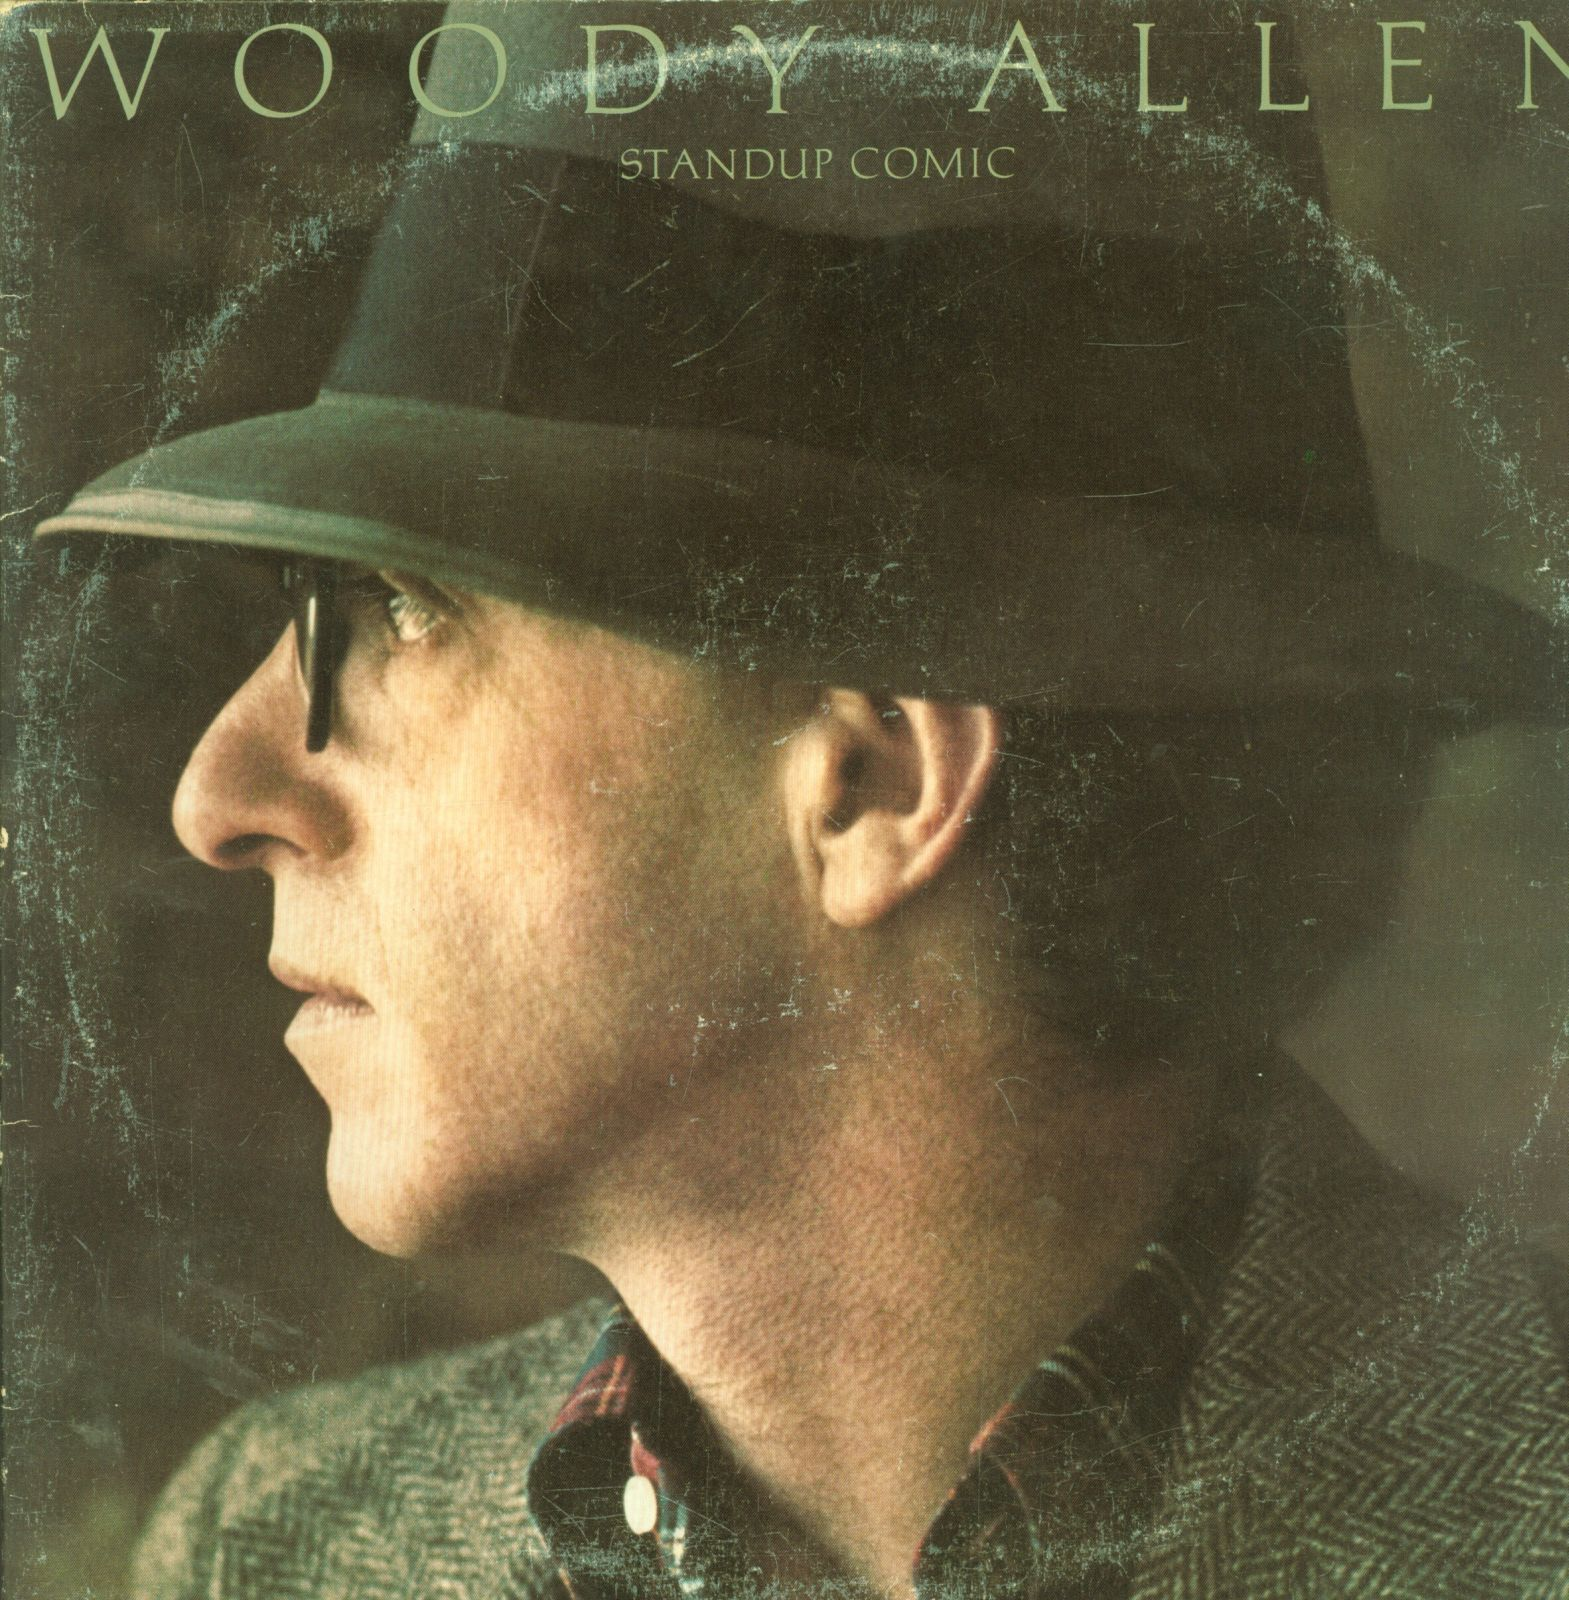 Standup Comic The Woody Allen Pages